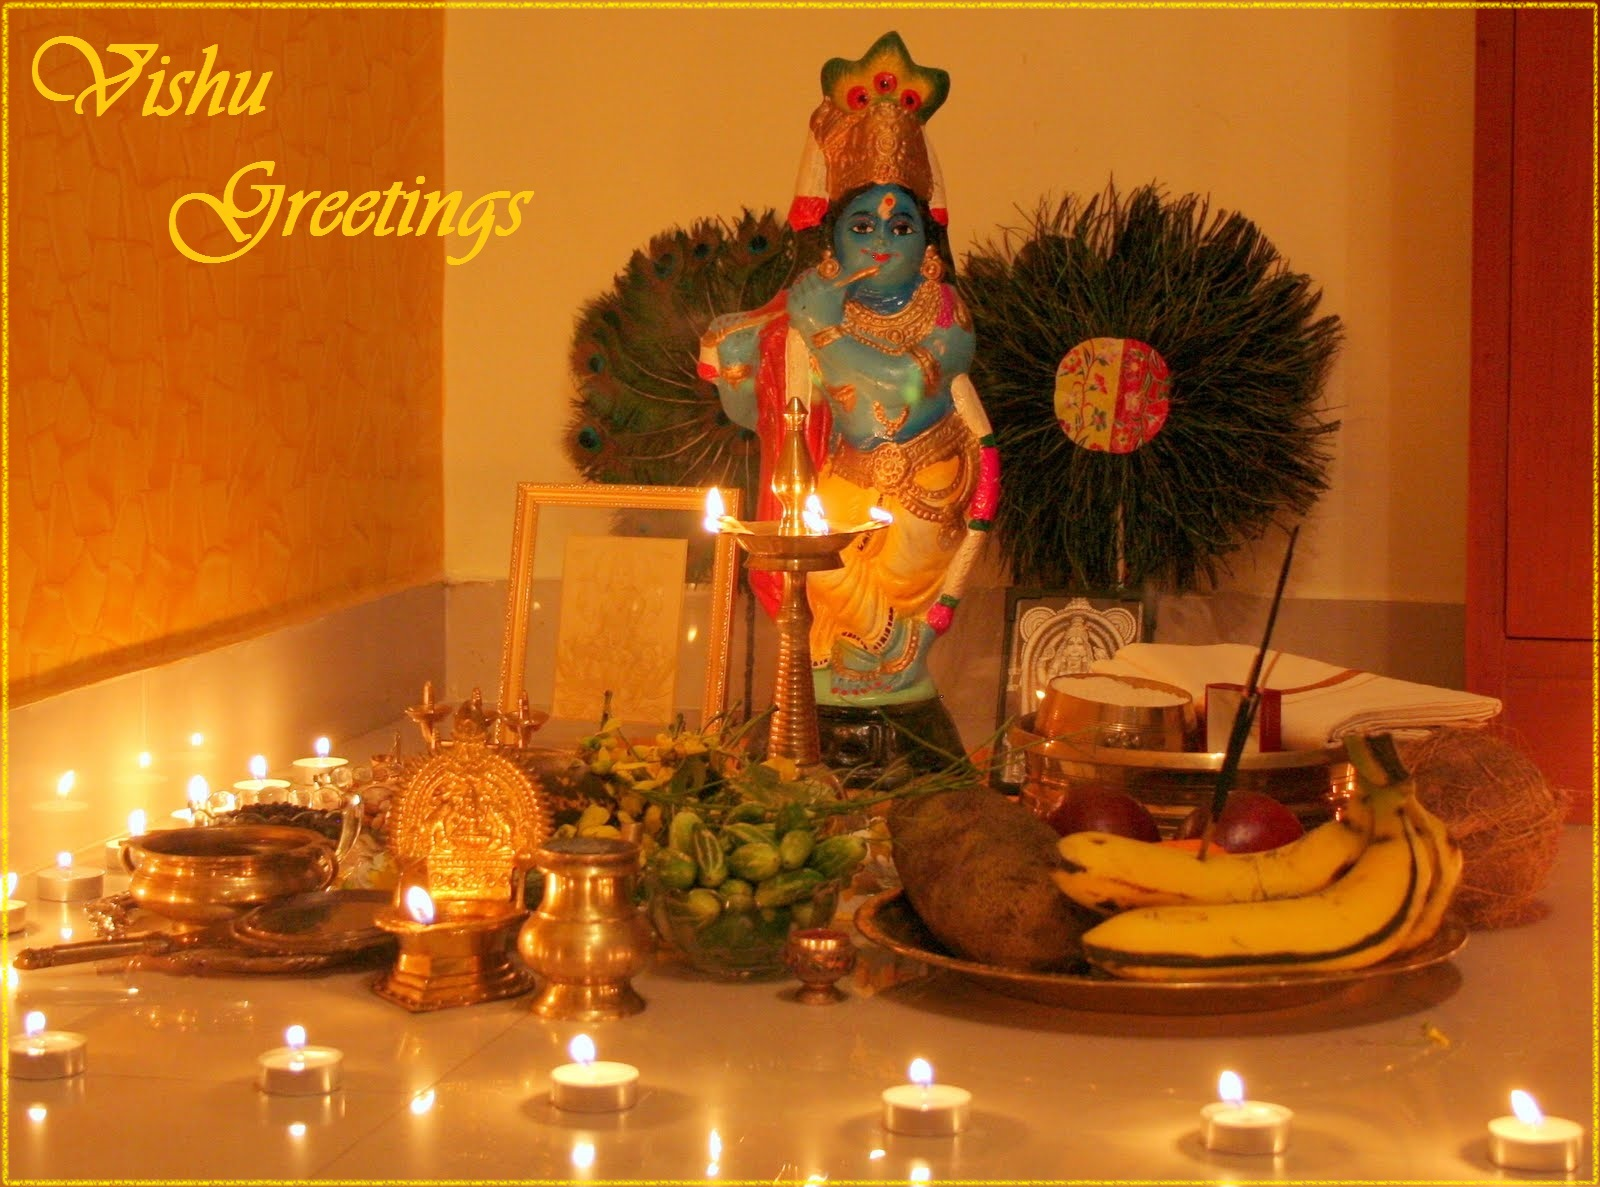 Best Happy Vishu Krishna Images, Most Popular Happy Vishu Krishna ...